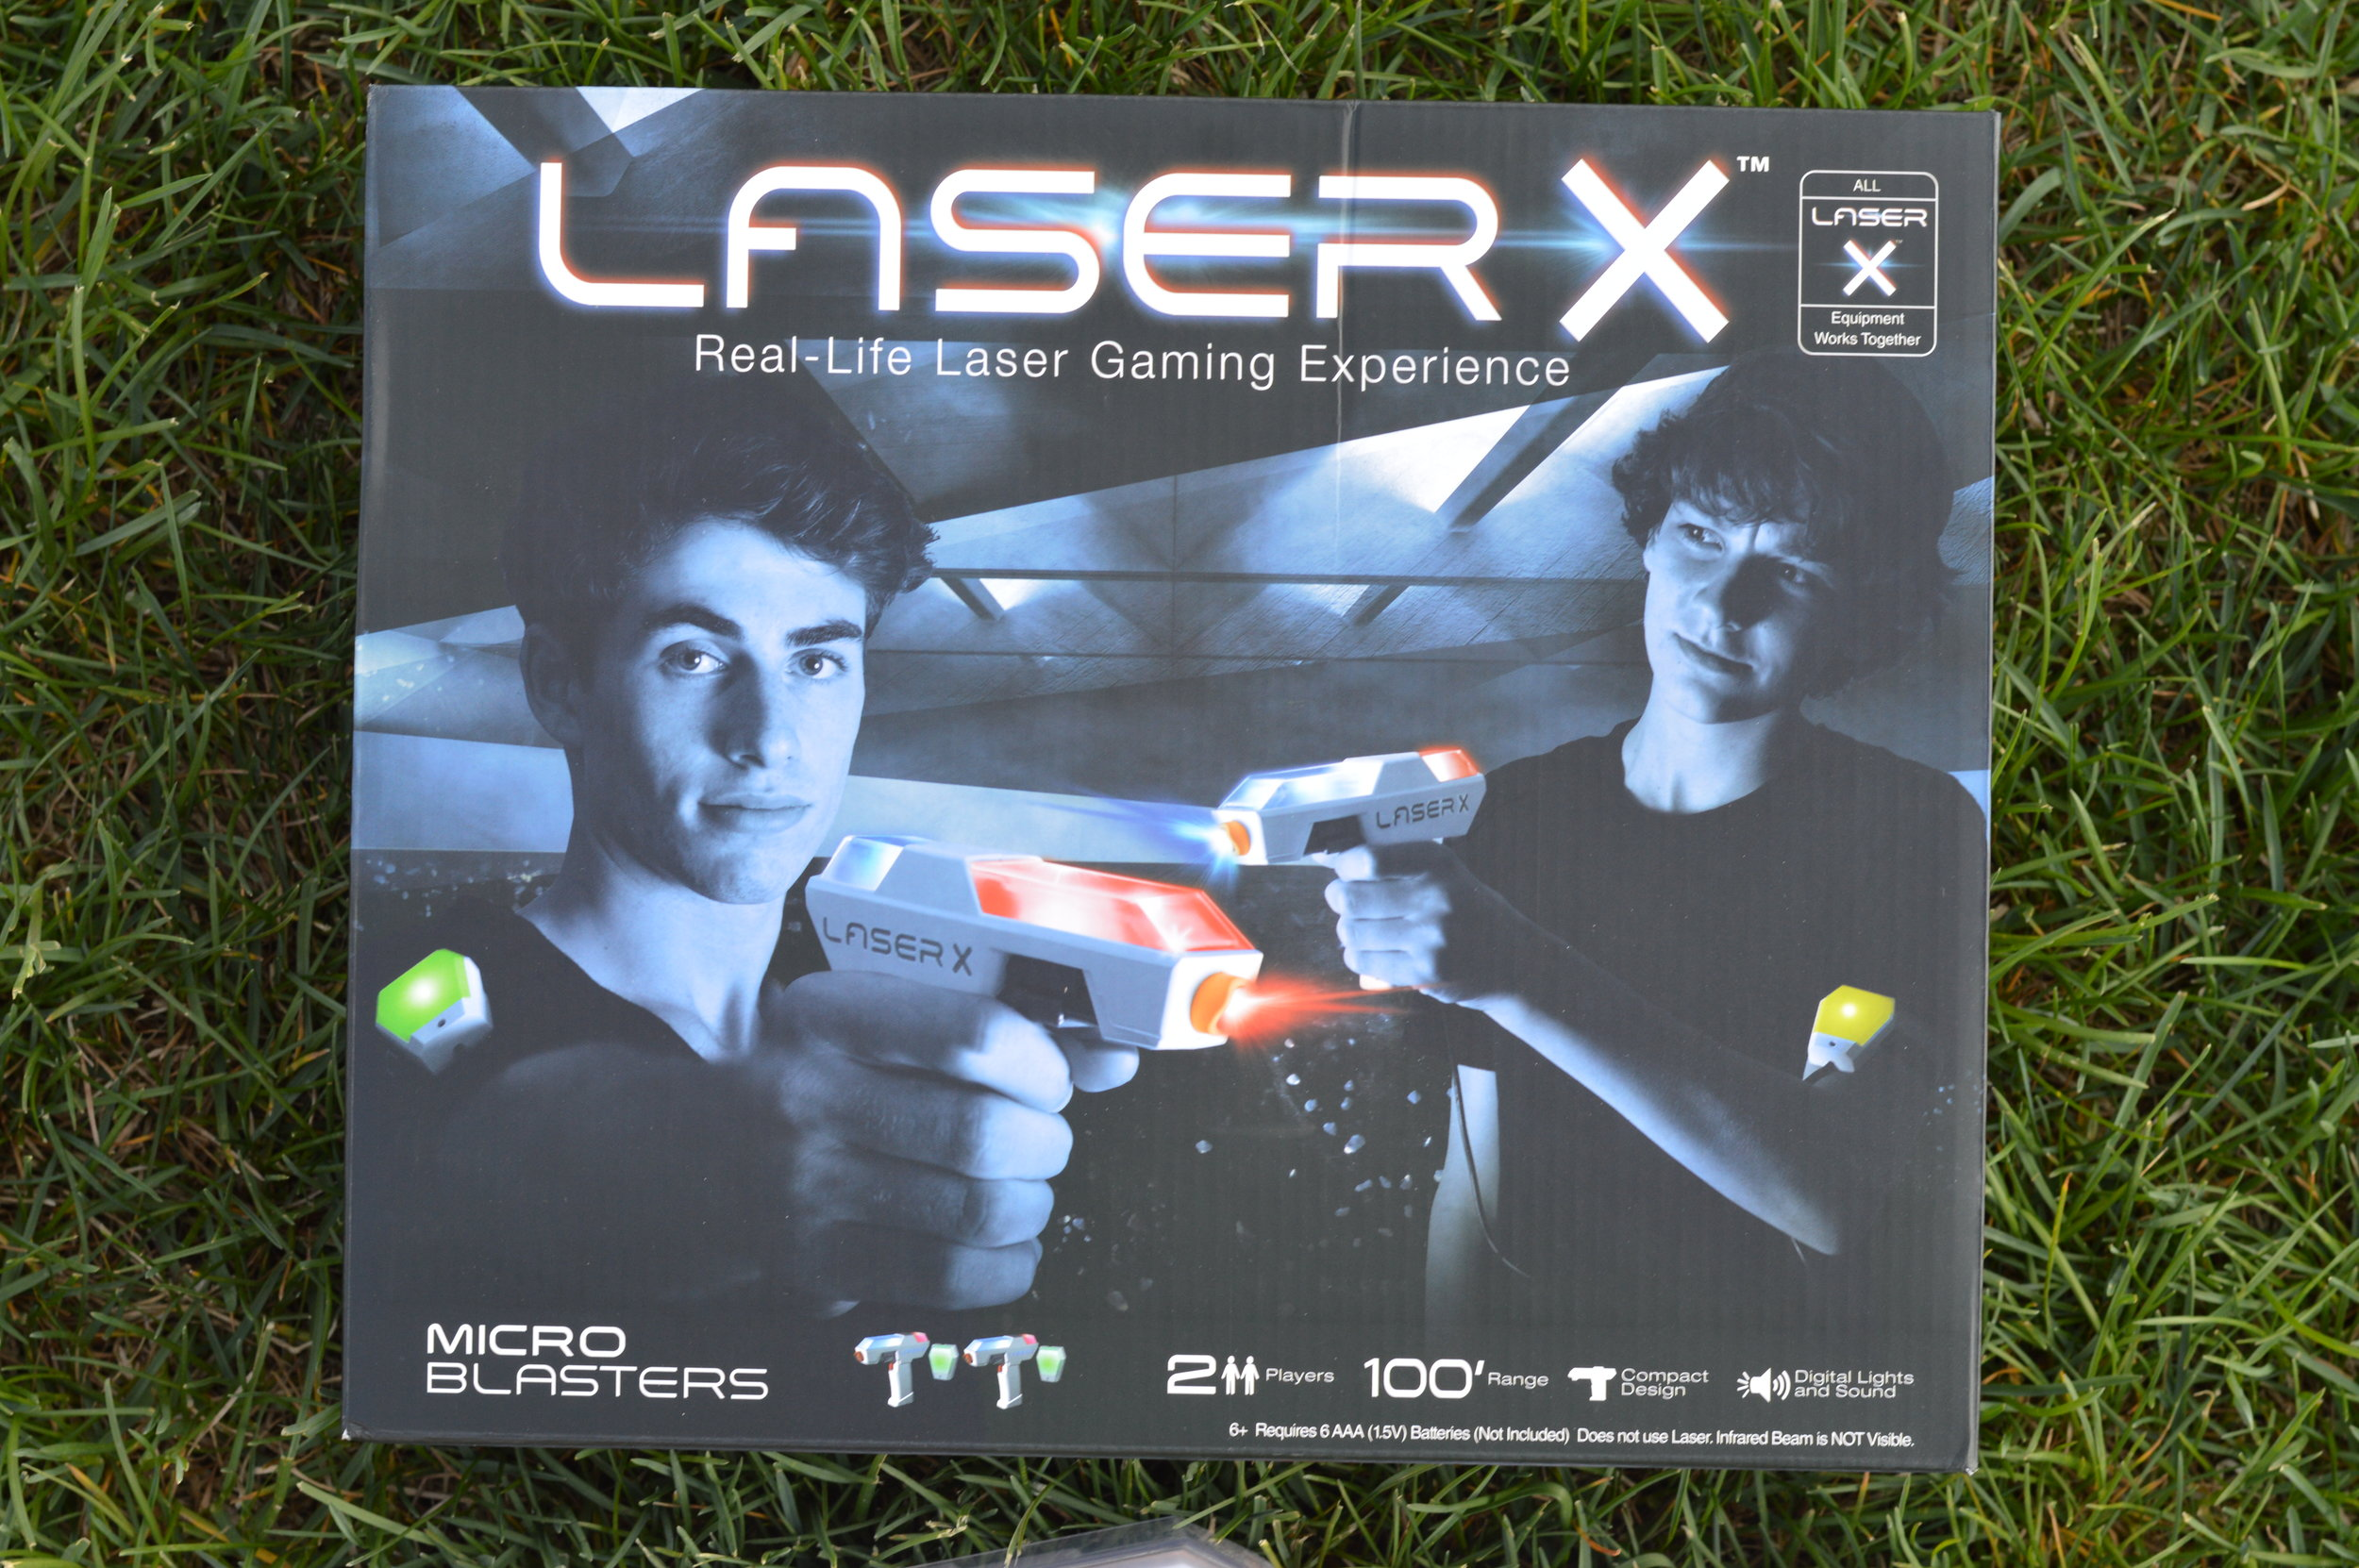 This post is in partnership with Laser X.